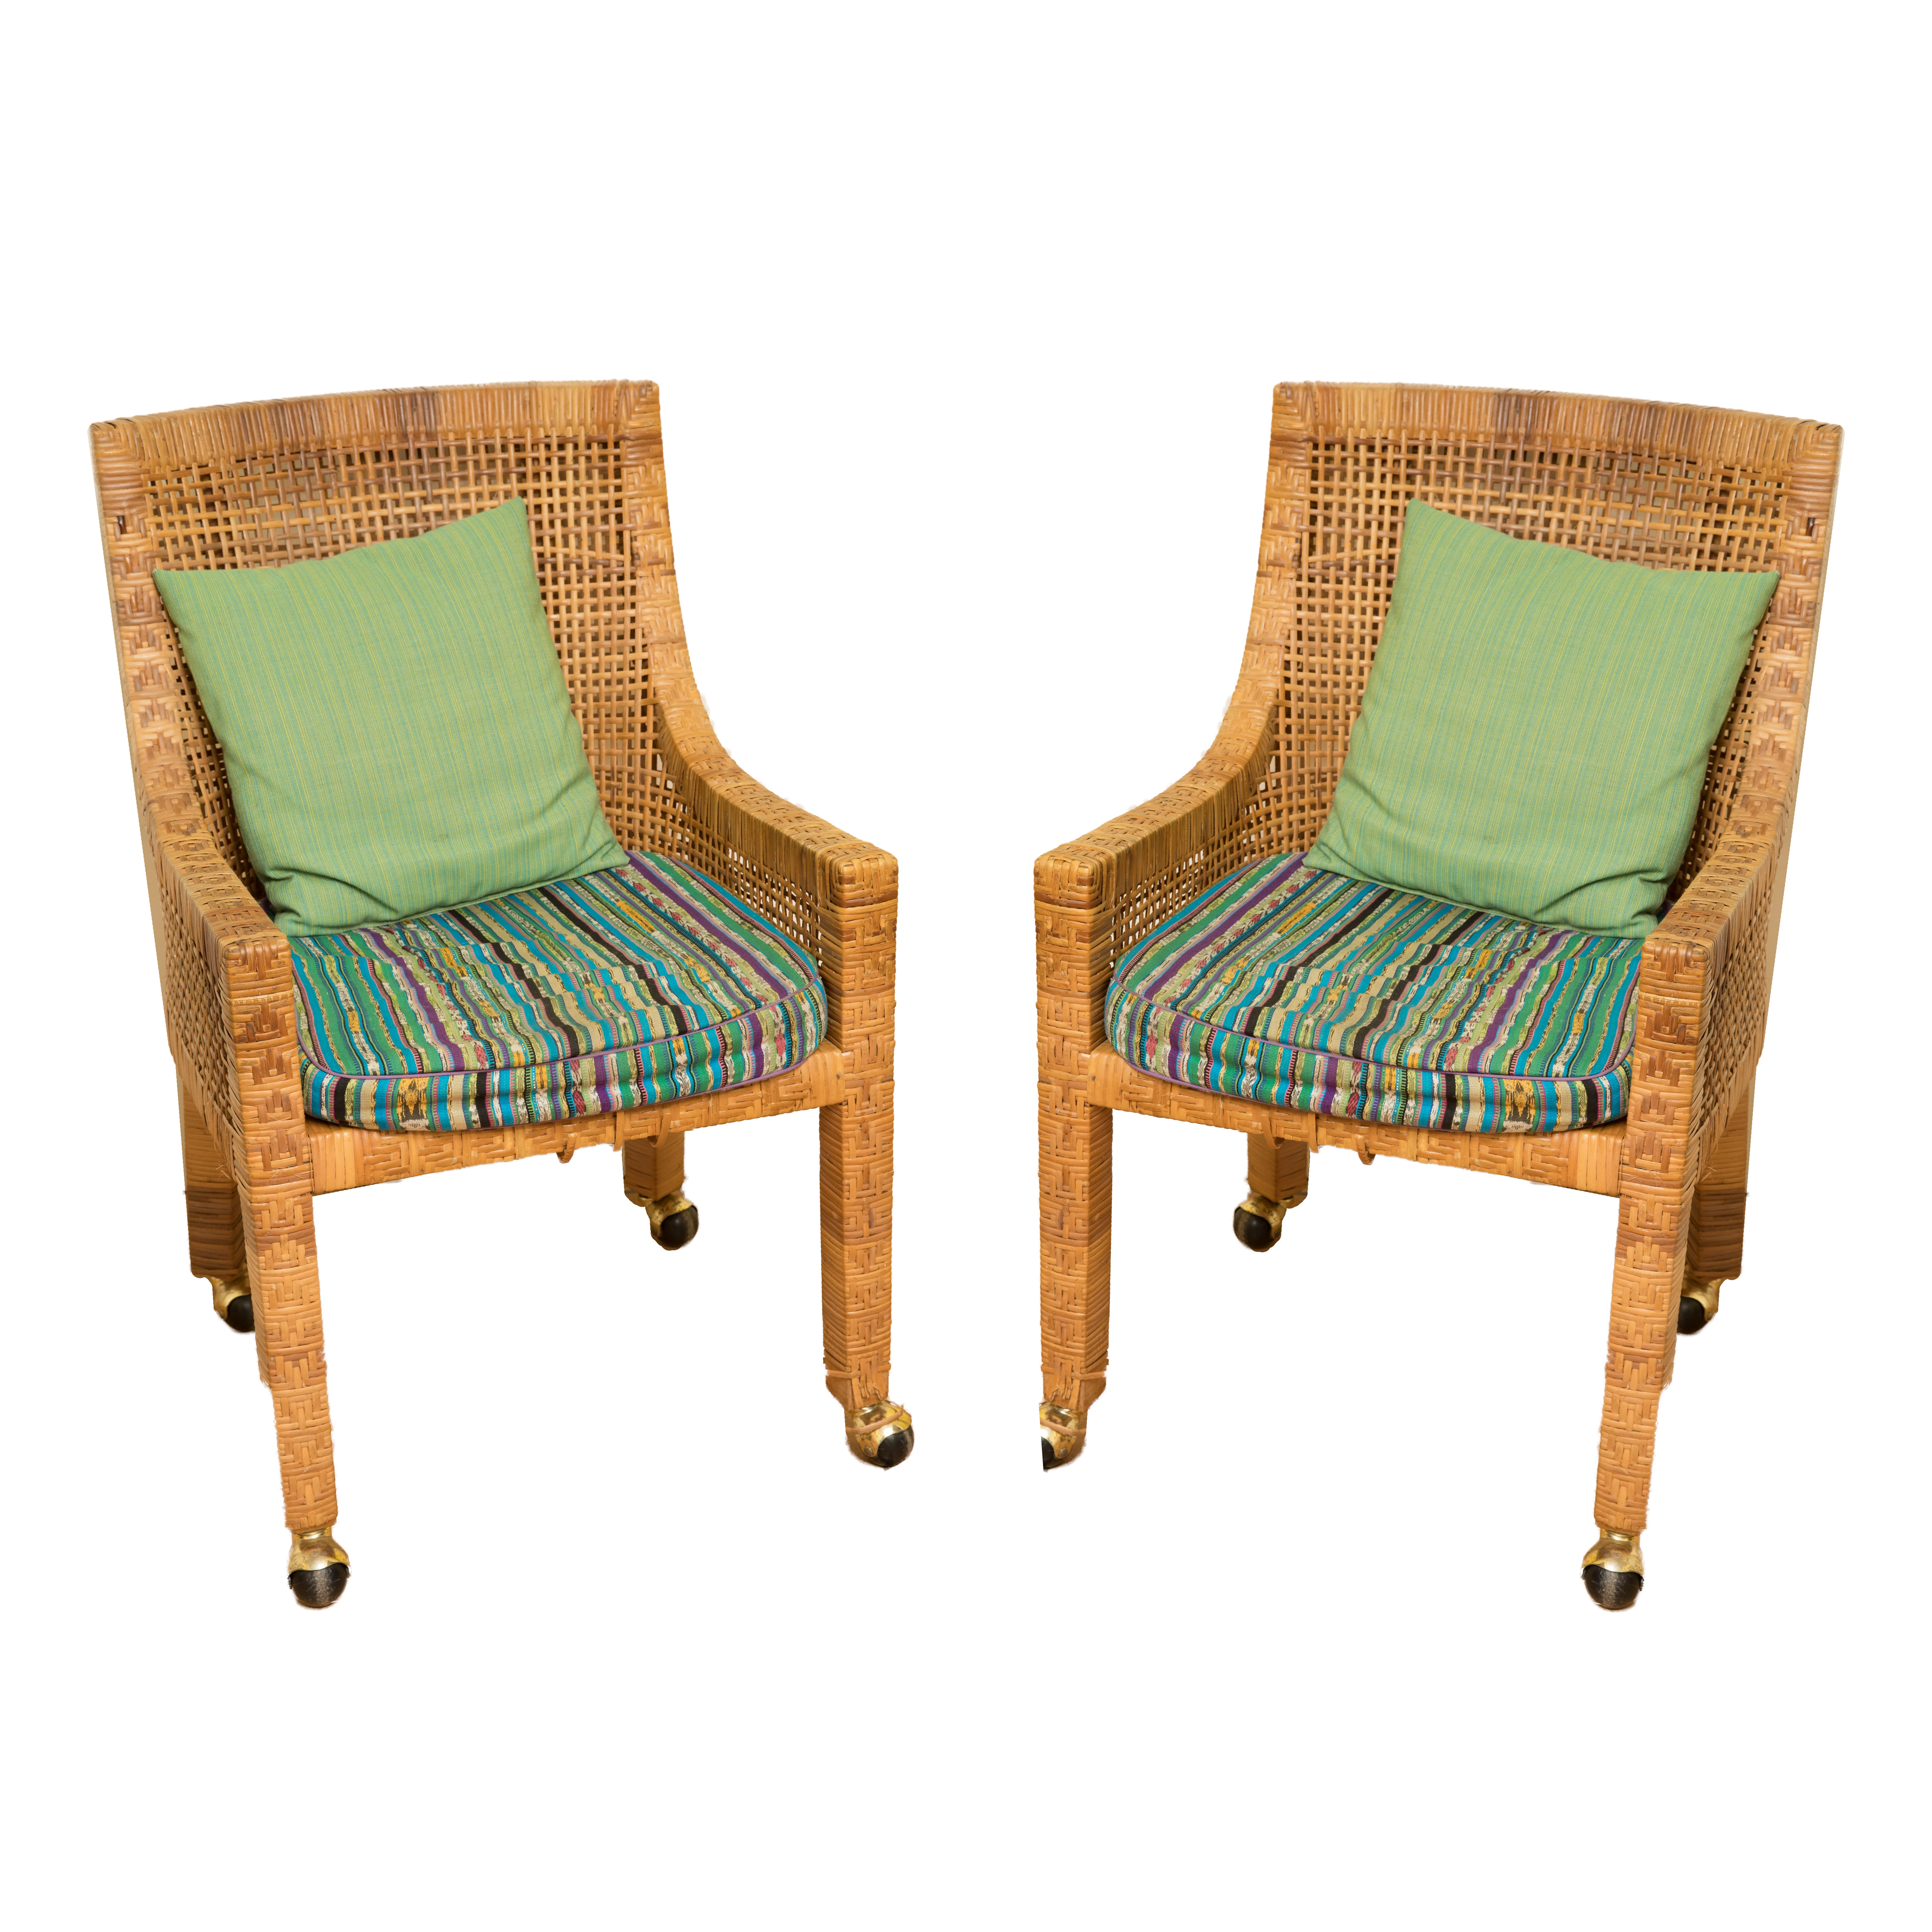 Two Wicker Arm Chairs